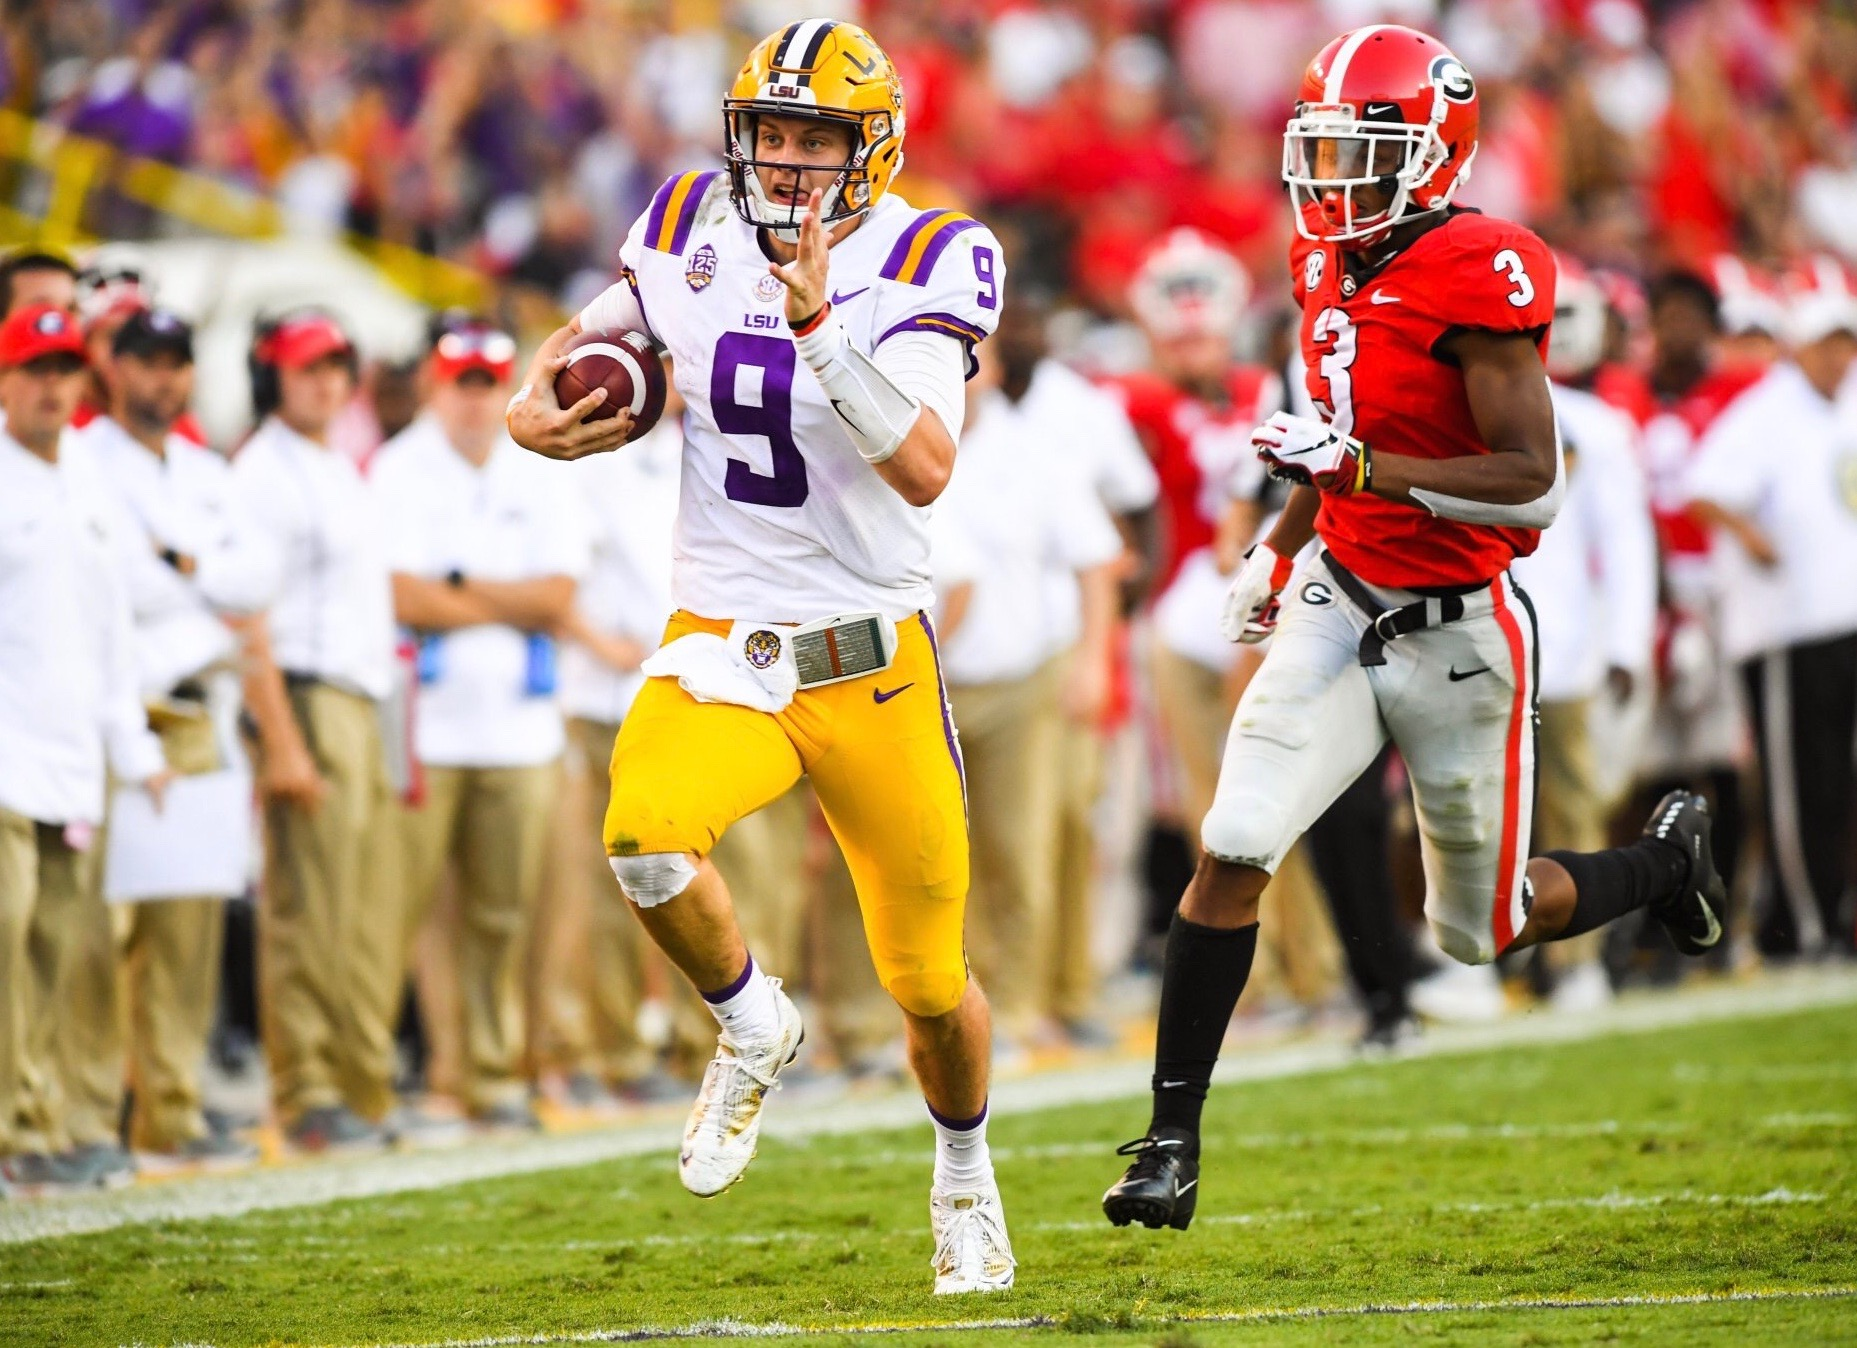 LSU rises back to No. 5 in latest AP poll